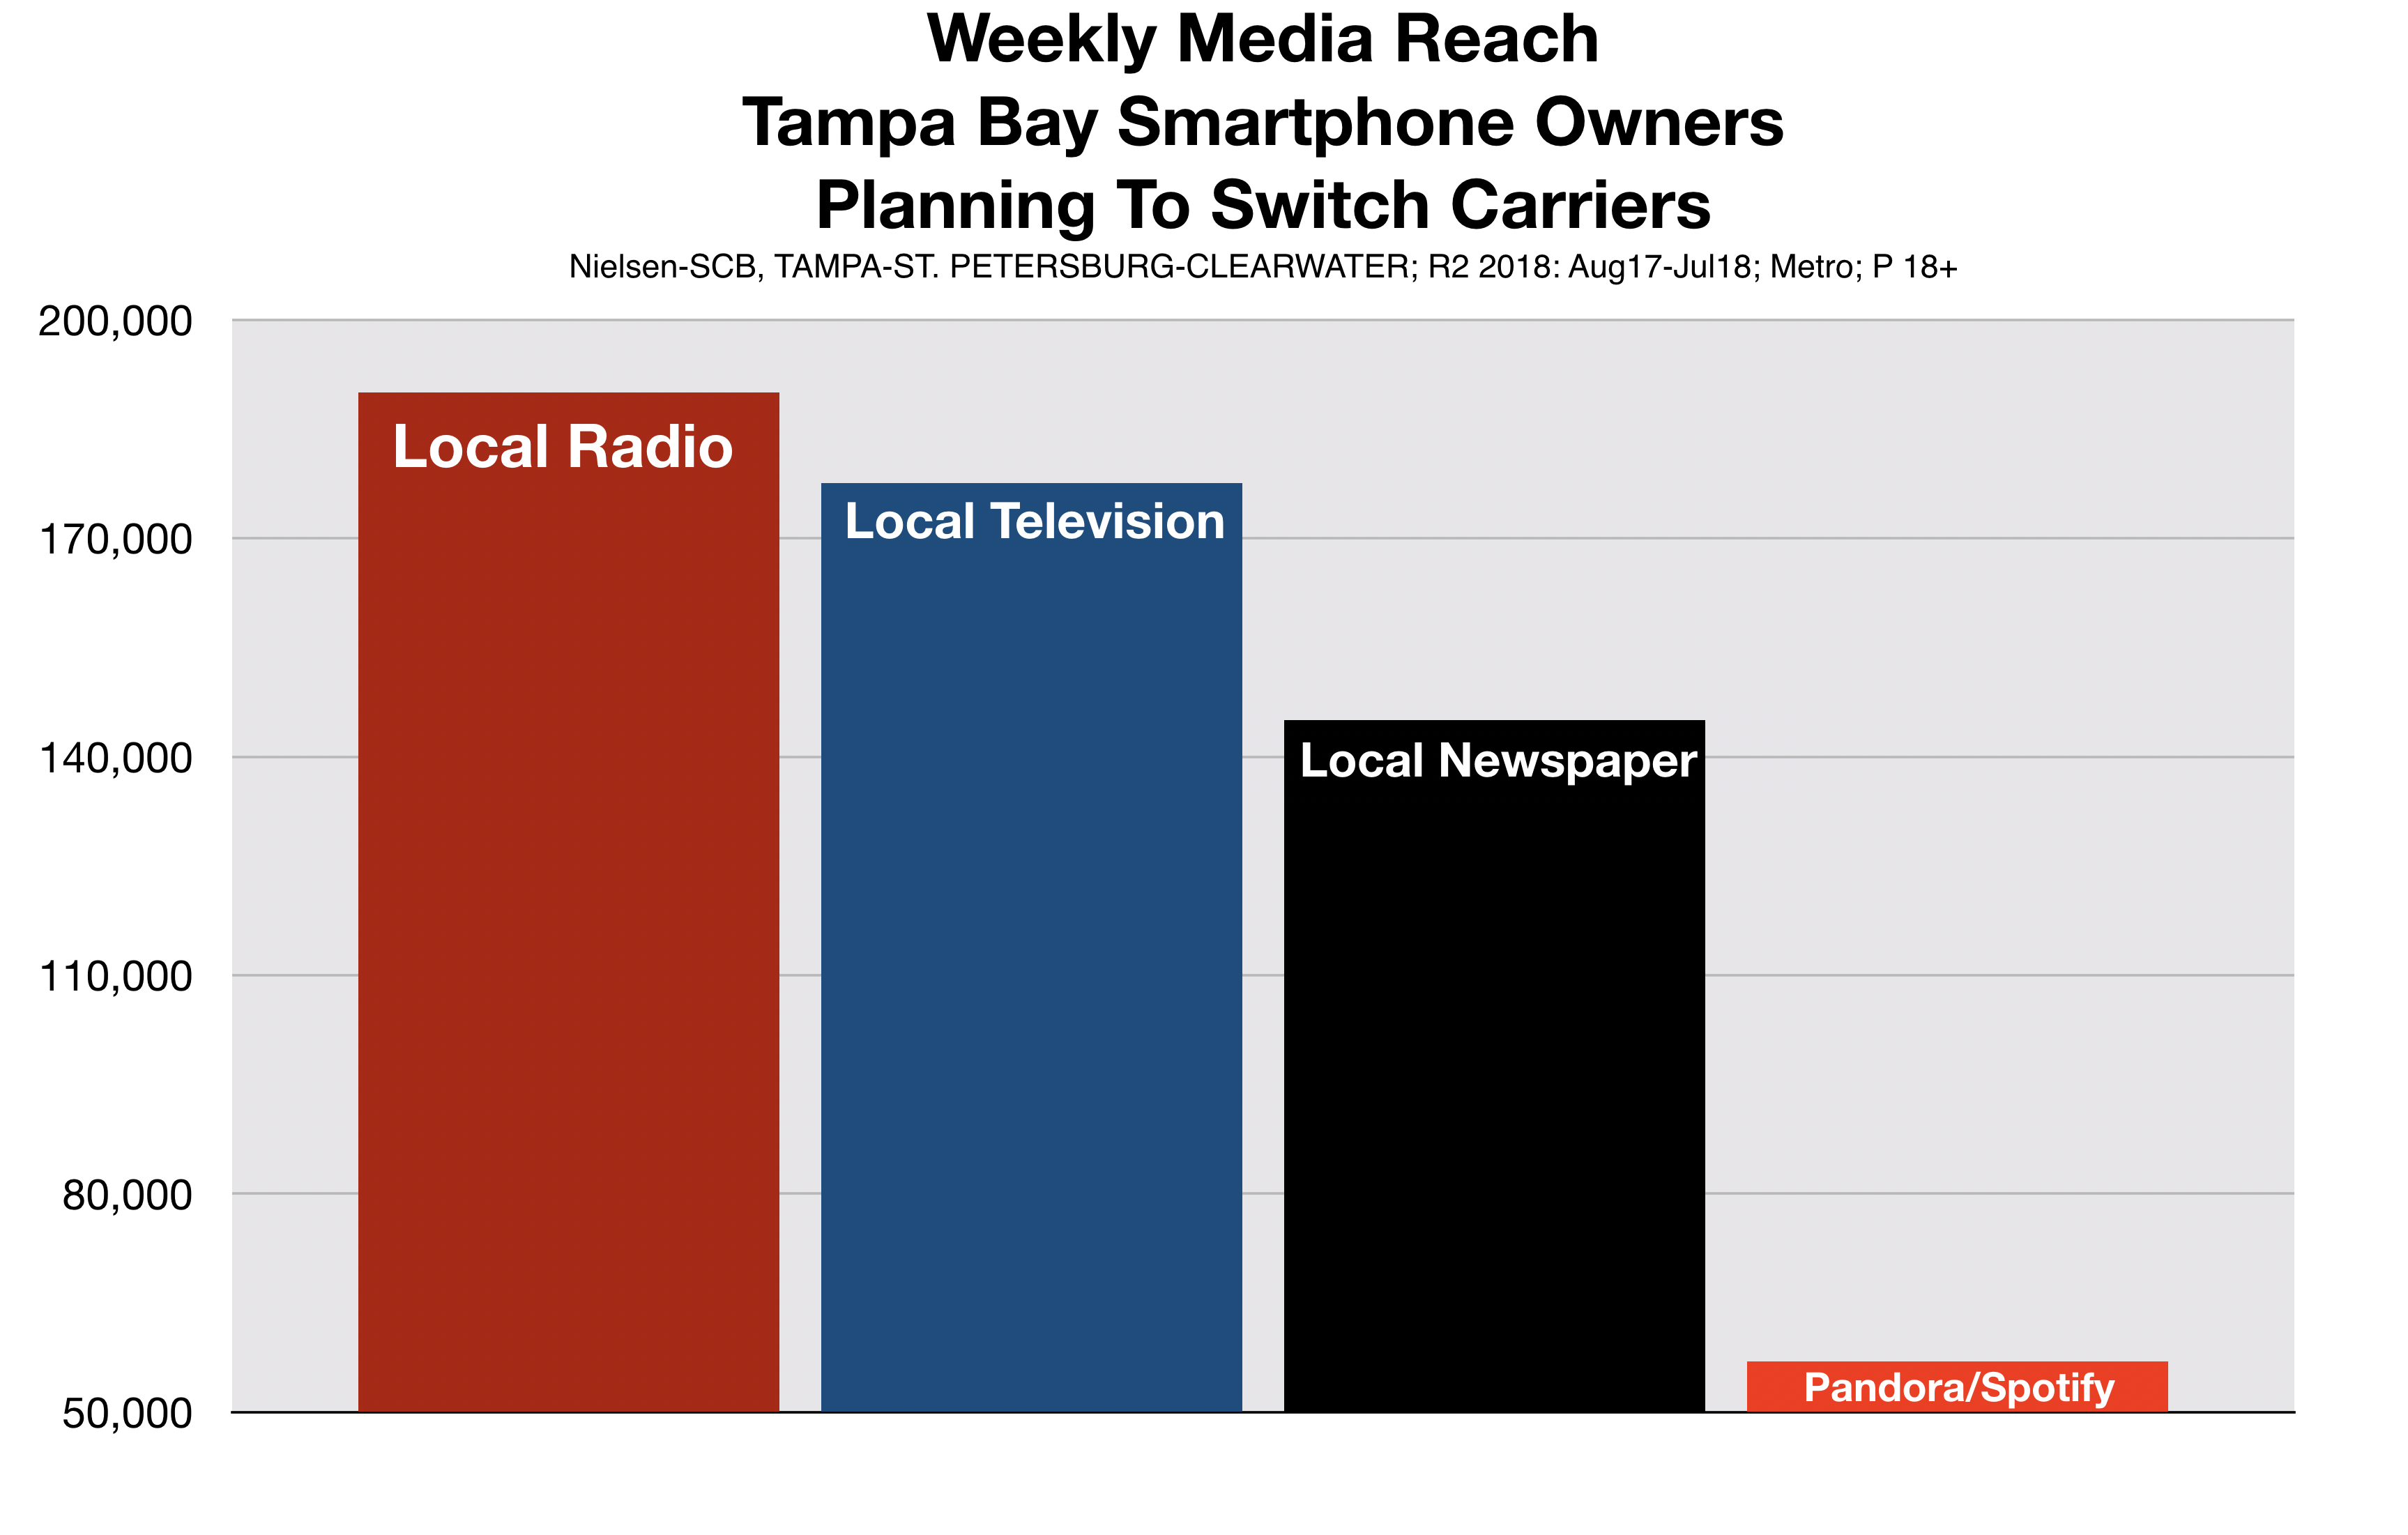 Advertising In Tampa Radio is Best Option To Reach Planning to Switch Wireless